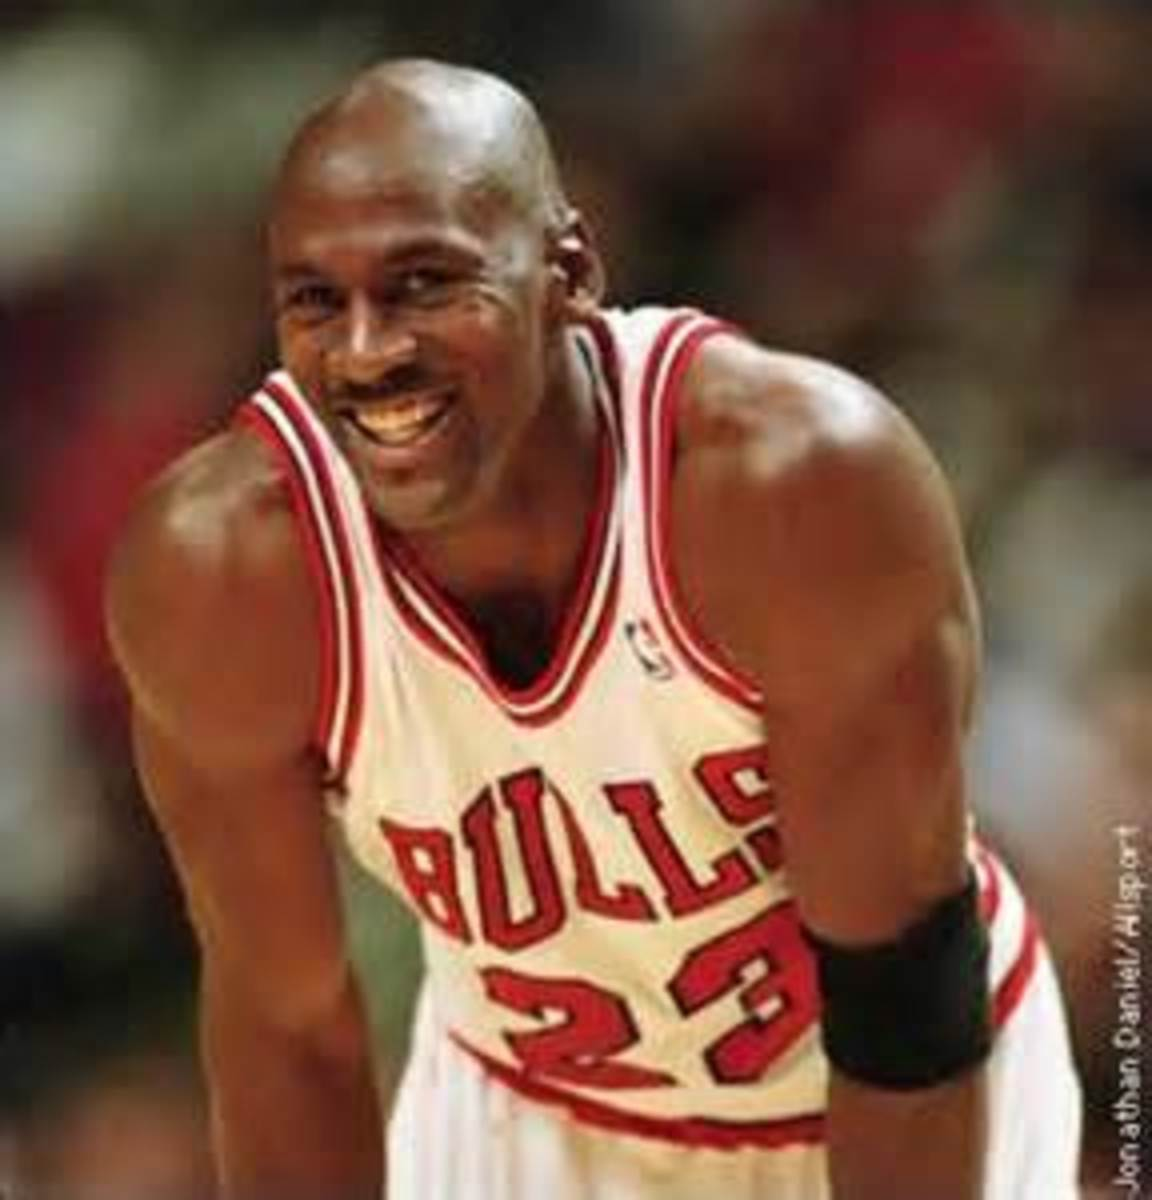 Jordan wasn't just the biggest star in the NBA, he was the biggest star in sports. It's easy to smile when you've accomplished what he has.